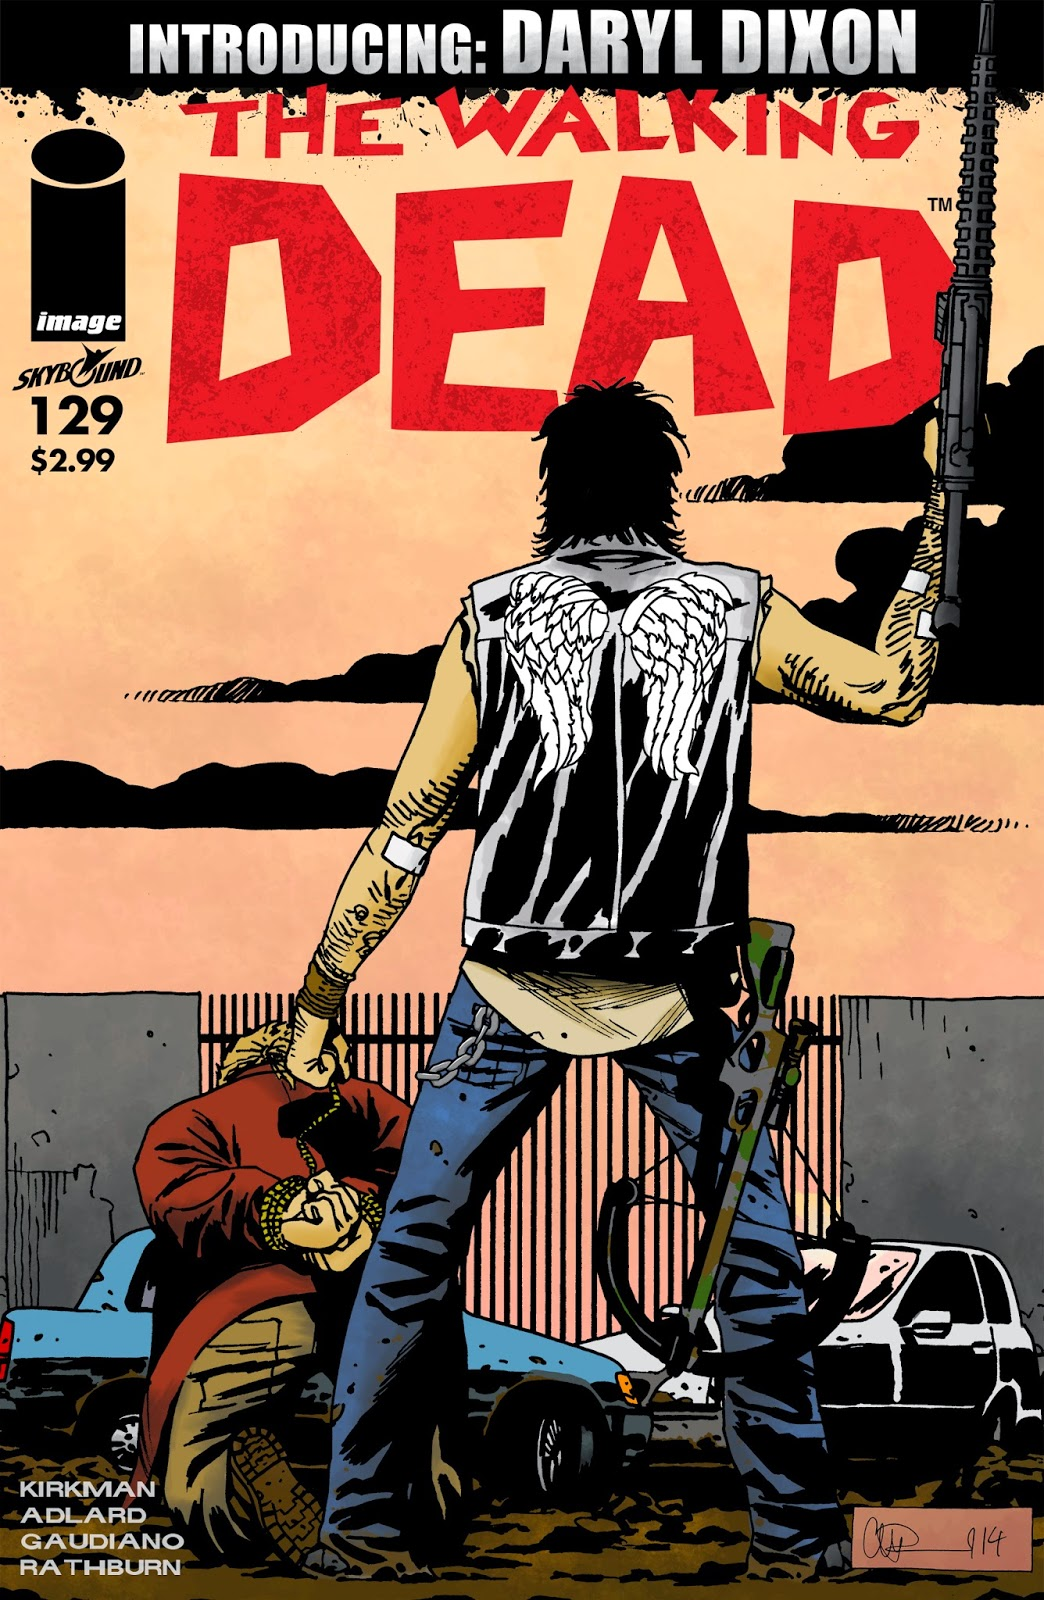 portada falsa del nº 129 de The Walking Dead